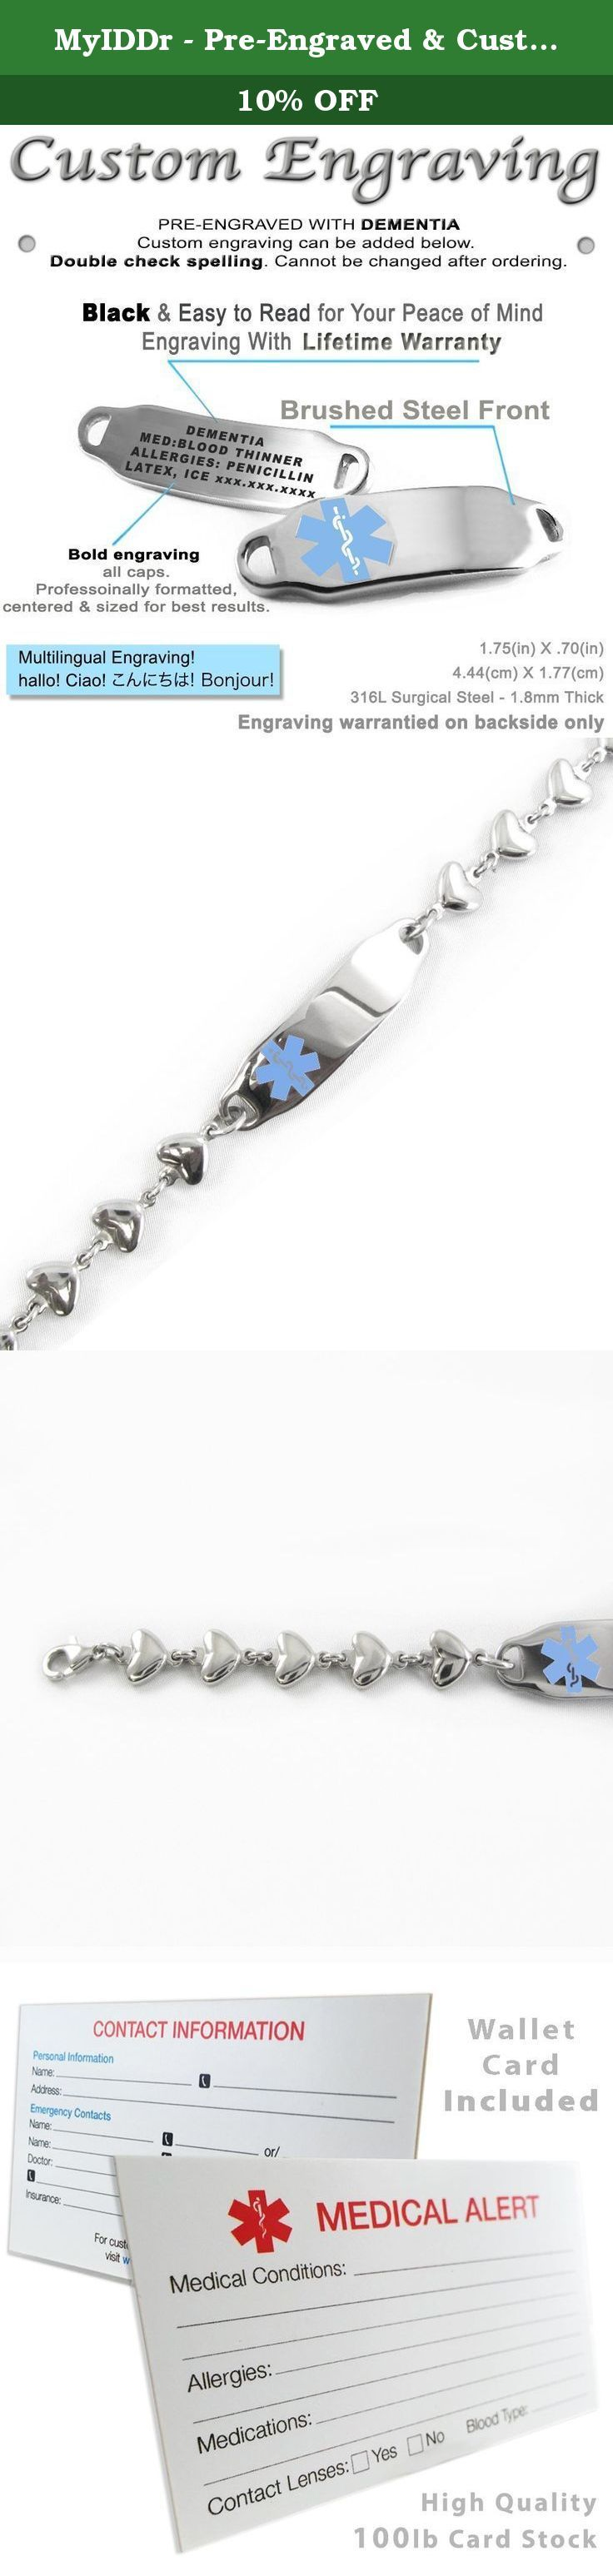 MyIDDr - Pre-Engraved & Customized Women's Dementia Medical ID Bracelet, Heart Chain (Light Blue). This custom engraved DEMENTIA medical bracelet is a life saving tool. This item in particular is styled with a steel heart link chain. This stainless steel is noncorrosive and can get wet without tarnishing. This medical ID bracelet is custom engraved & pre-engraved. This means DEMENTIA is pre-engraved at the top of the ID plate (see photo) and before checkout you can add custom information....